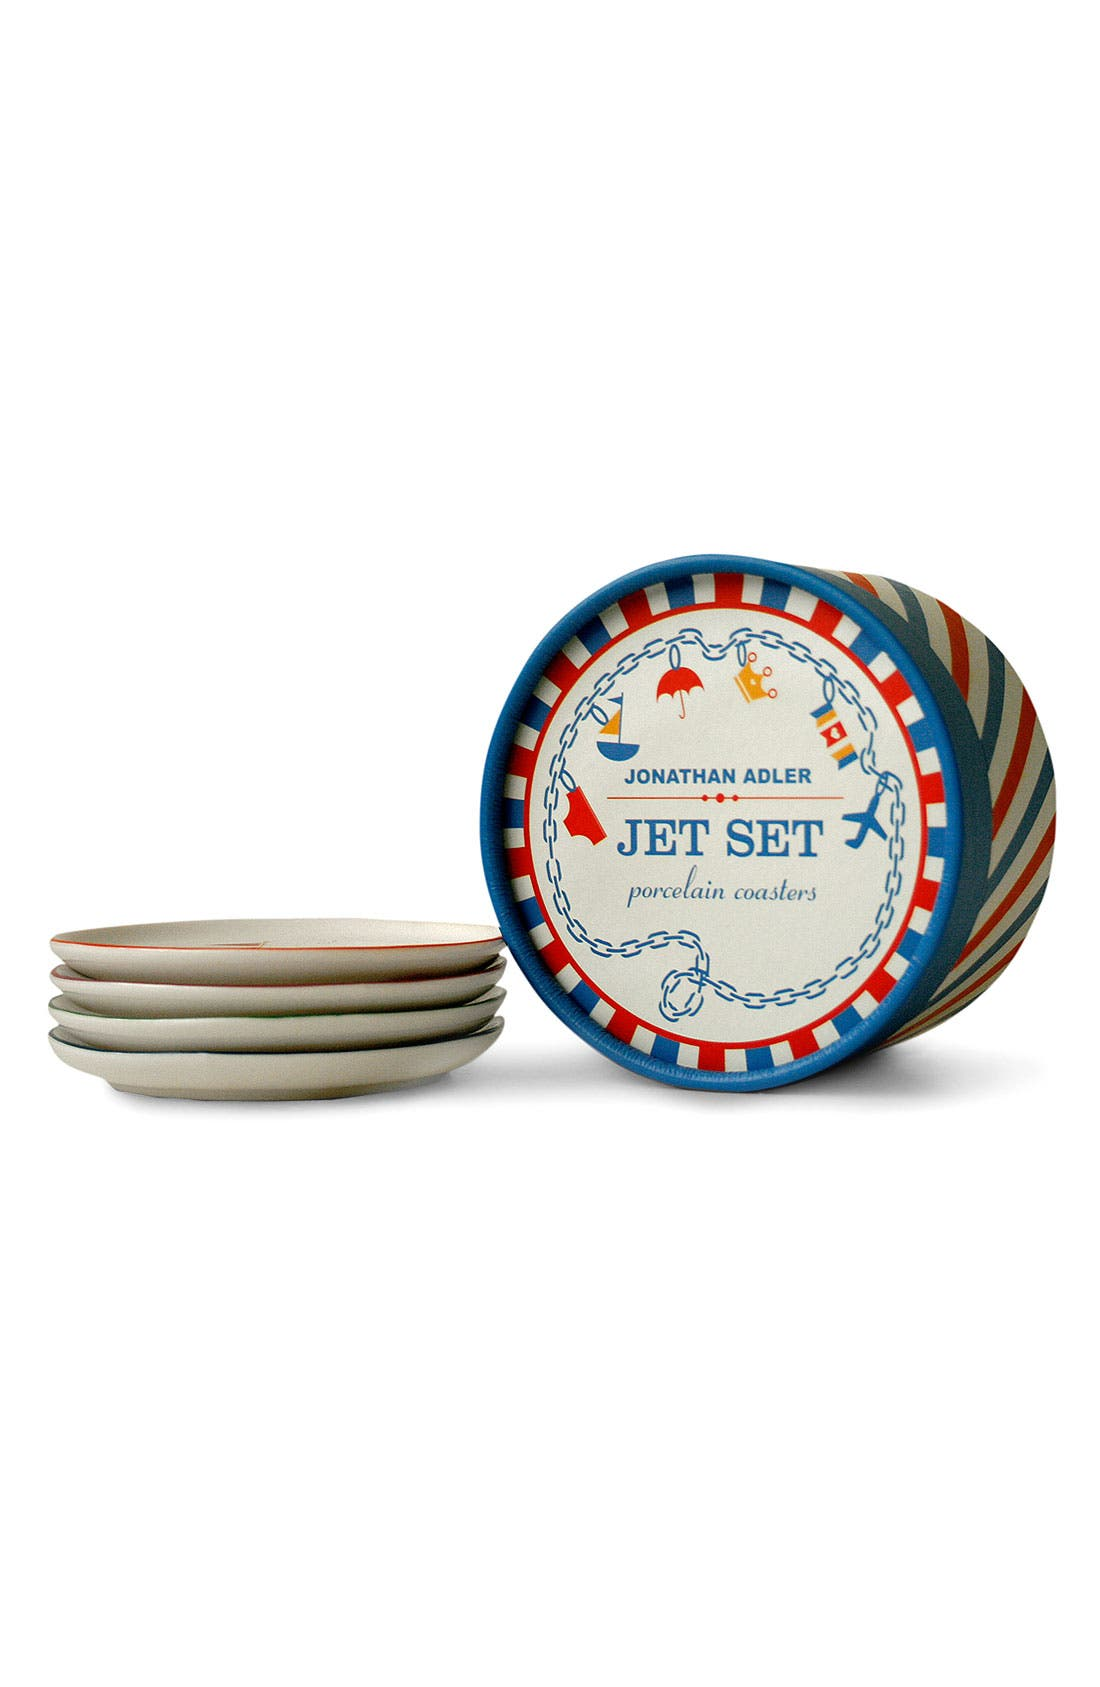 Alternate Image 2  - Jonathan Adler 'Jet Set' Porcelain Coasters